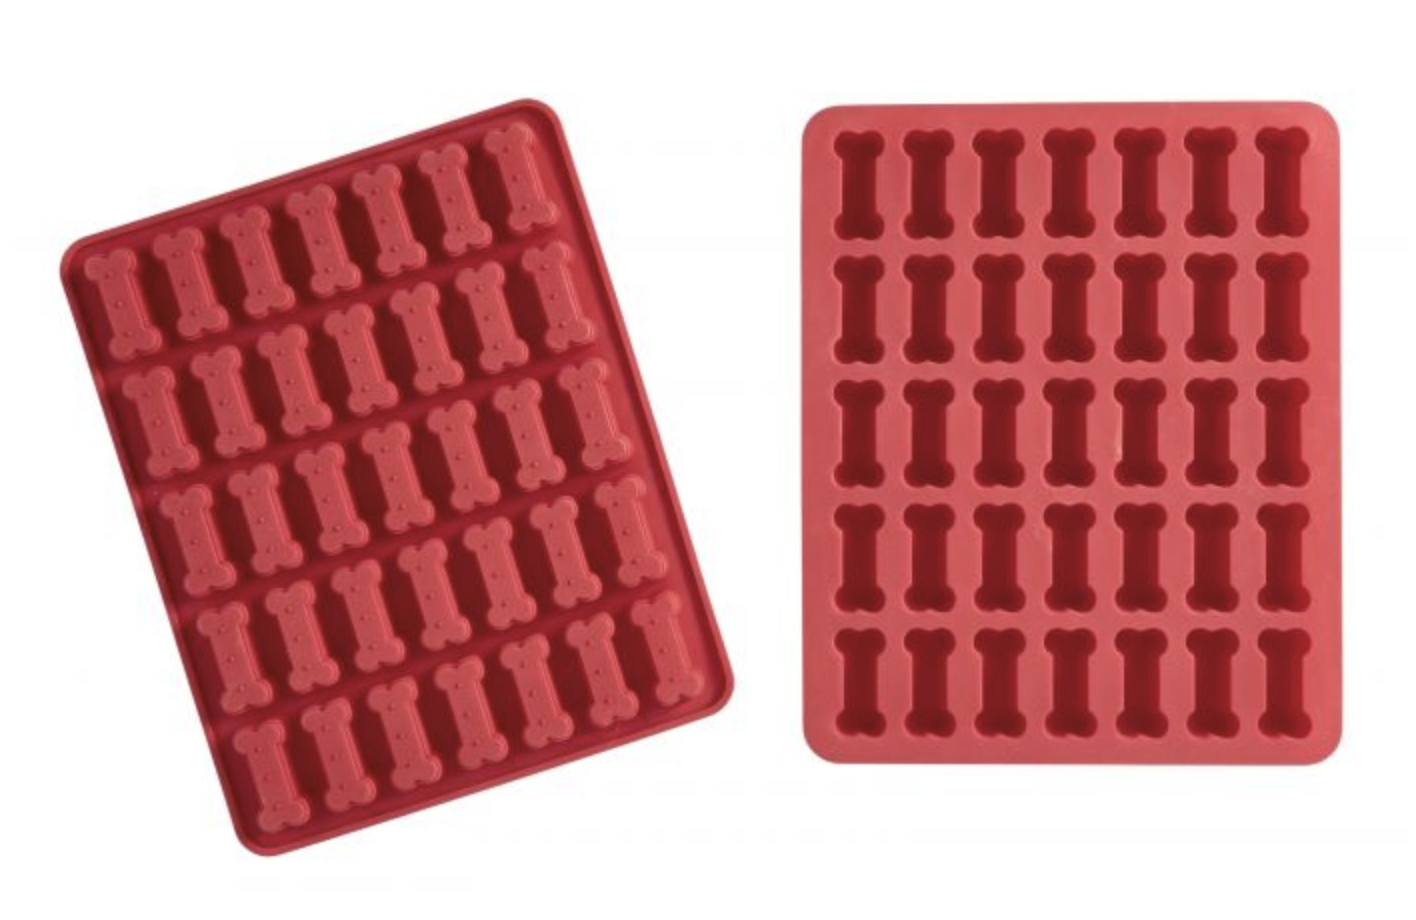 Dog Biscuit Silicone Mold